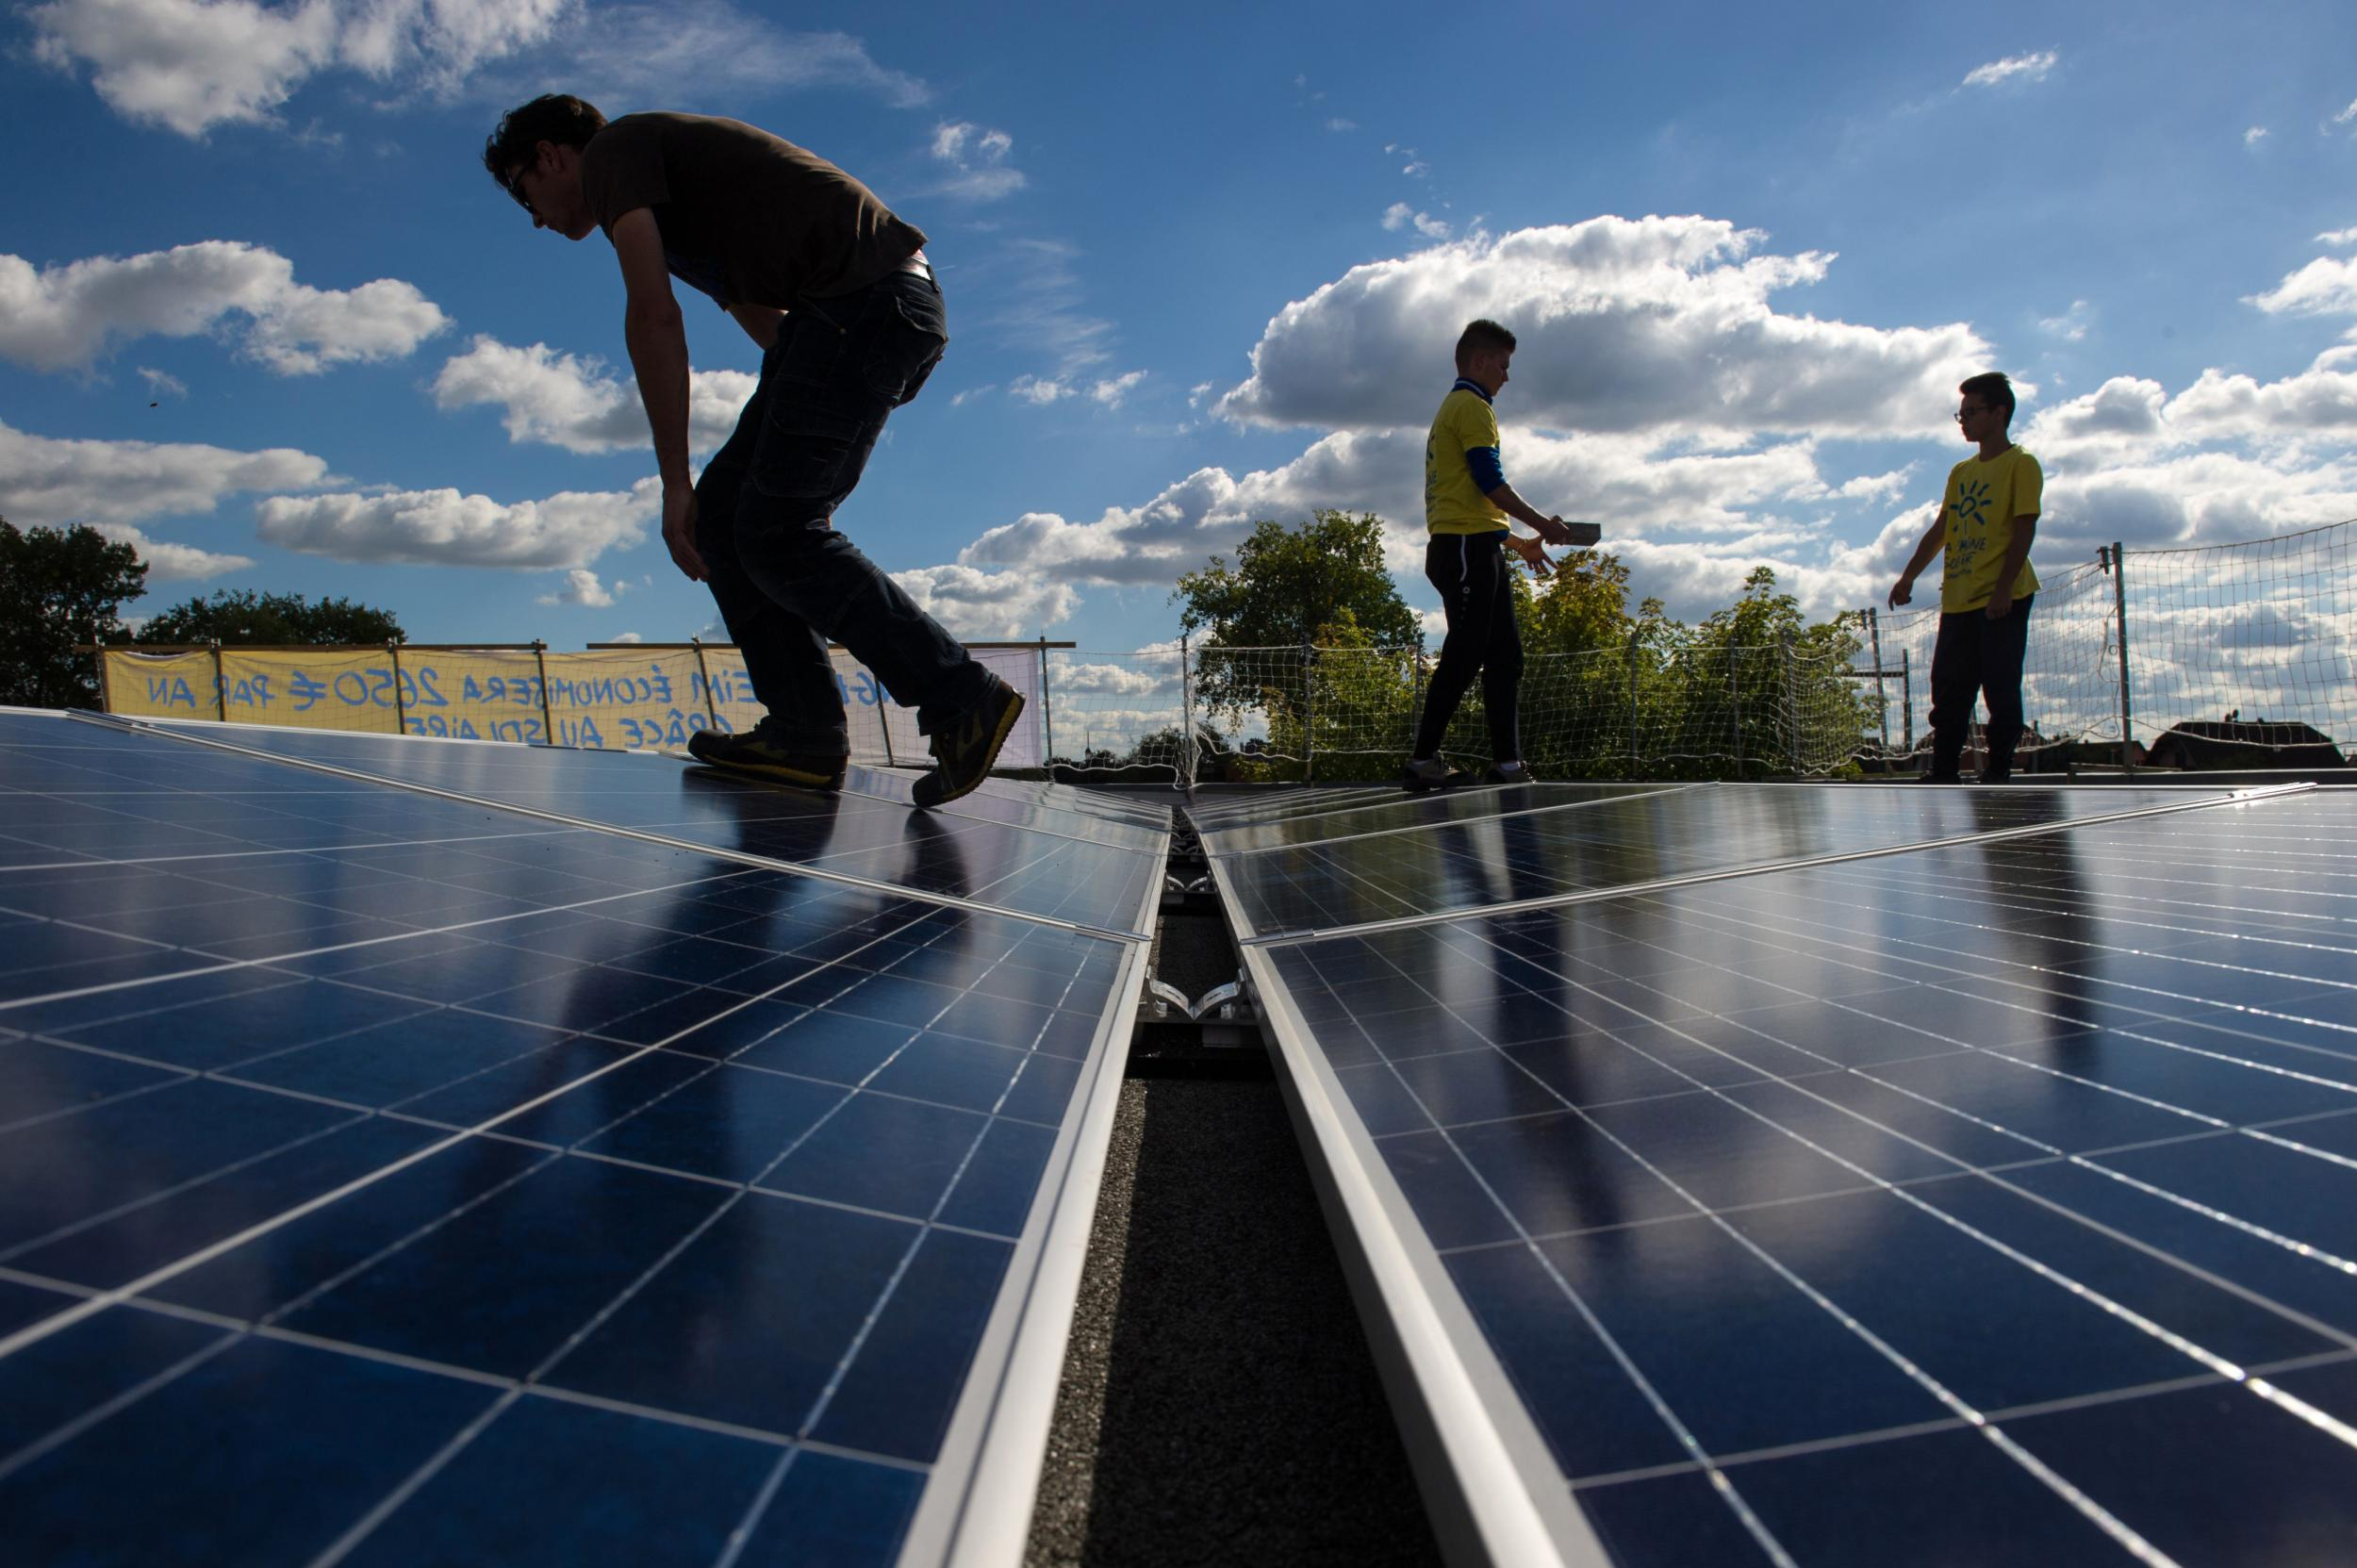 Two clean energy firms go bust within hours 'because of Tory U-turn on energy policy'